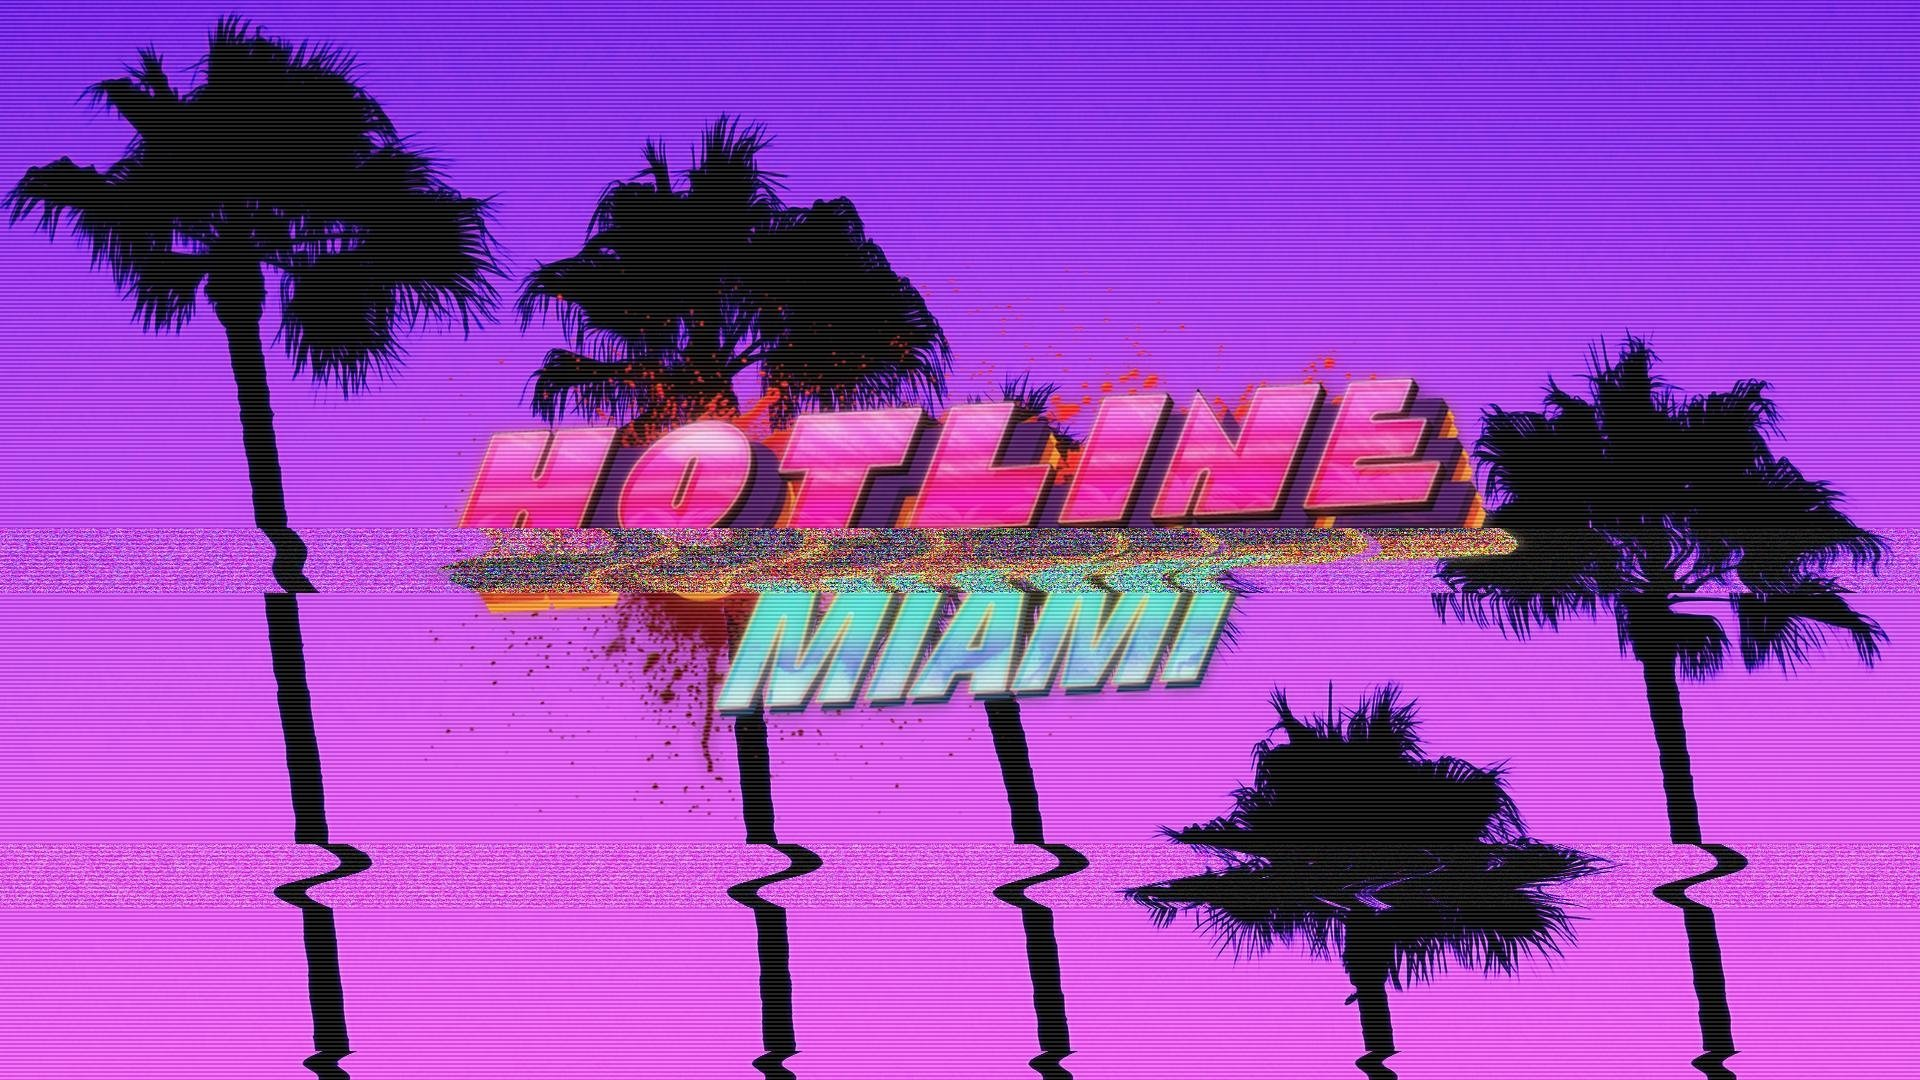 Hotline Miami Iphone Wallpaper Title Hd Wallpaper Background Image 1920x1080 Id